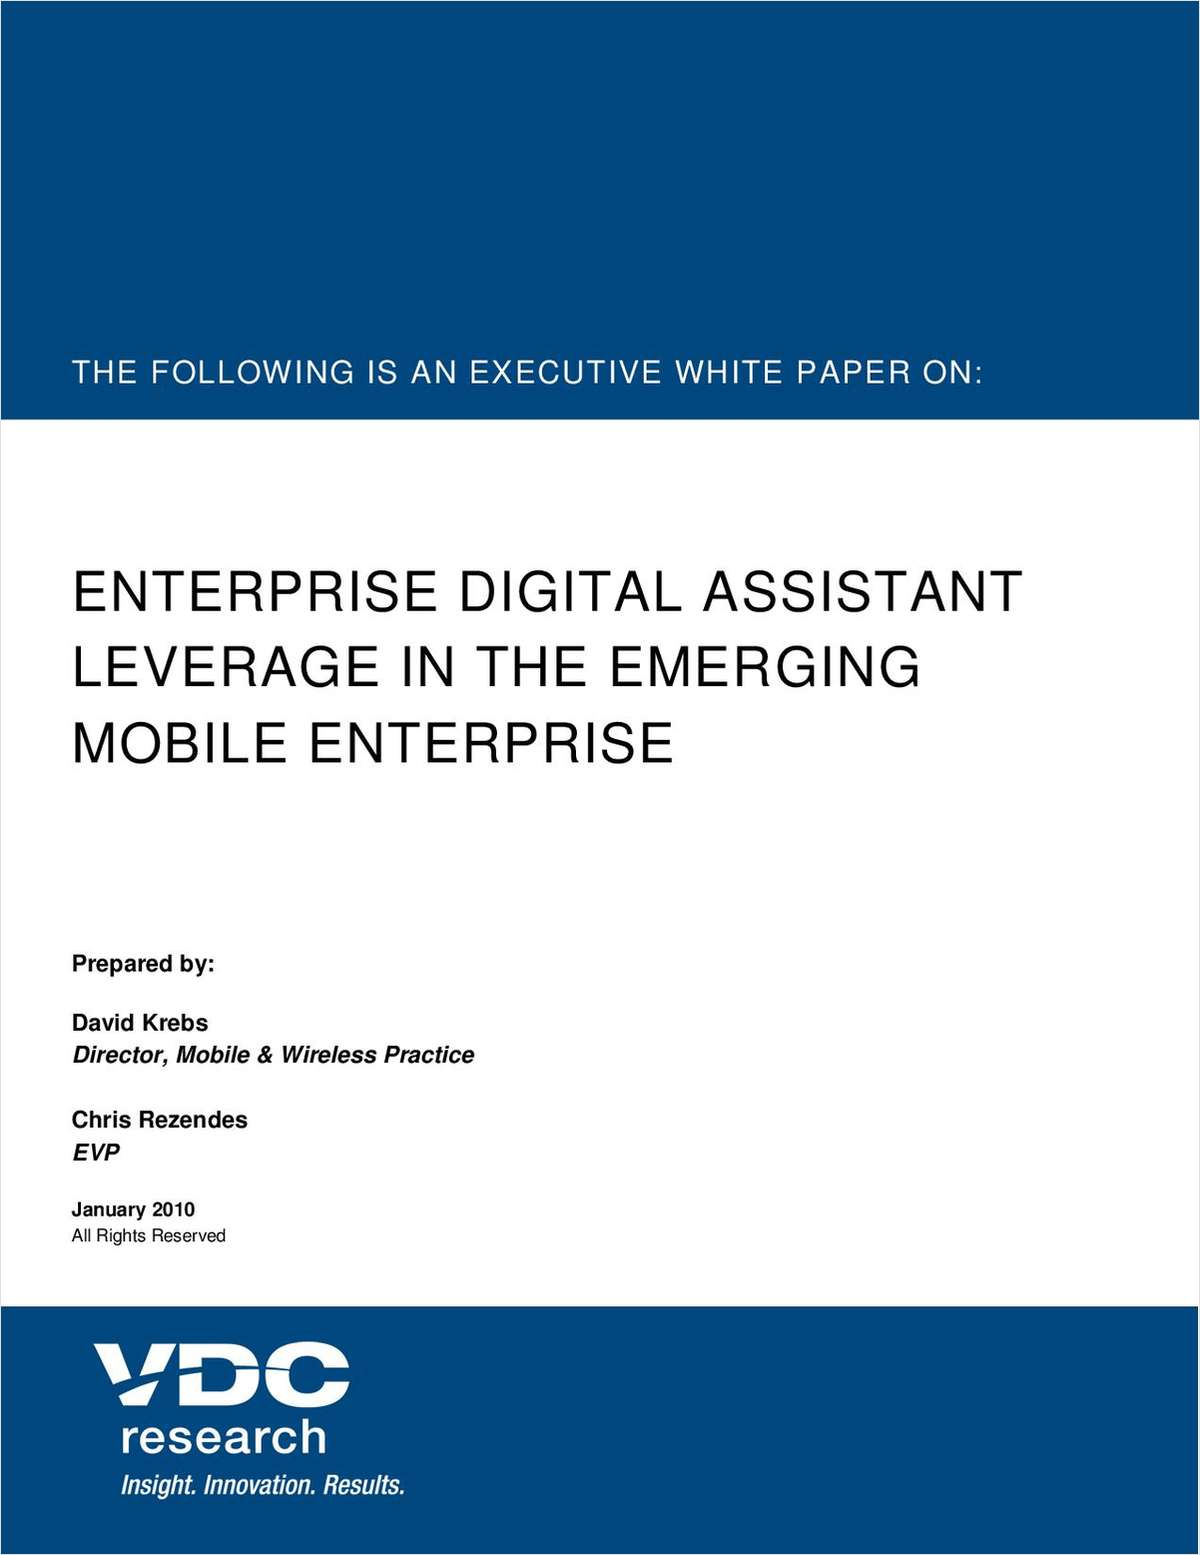 How Different Is Life with an Enterprise Digital Assistant for Mobile Healthcare Workers?